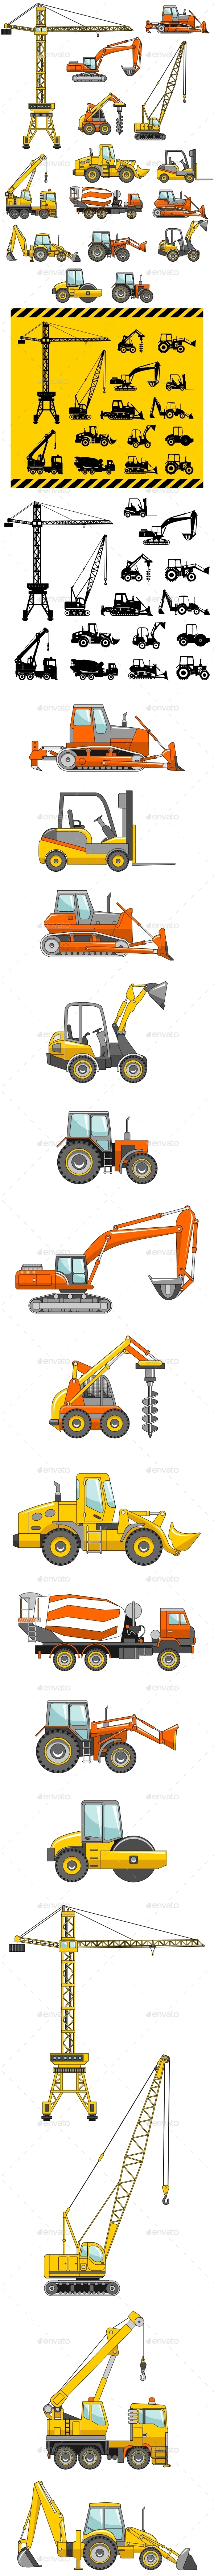 Set Of Heavy Construction Machines Icons - Man-made Objects Objects